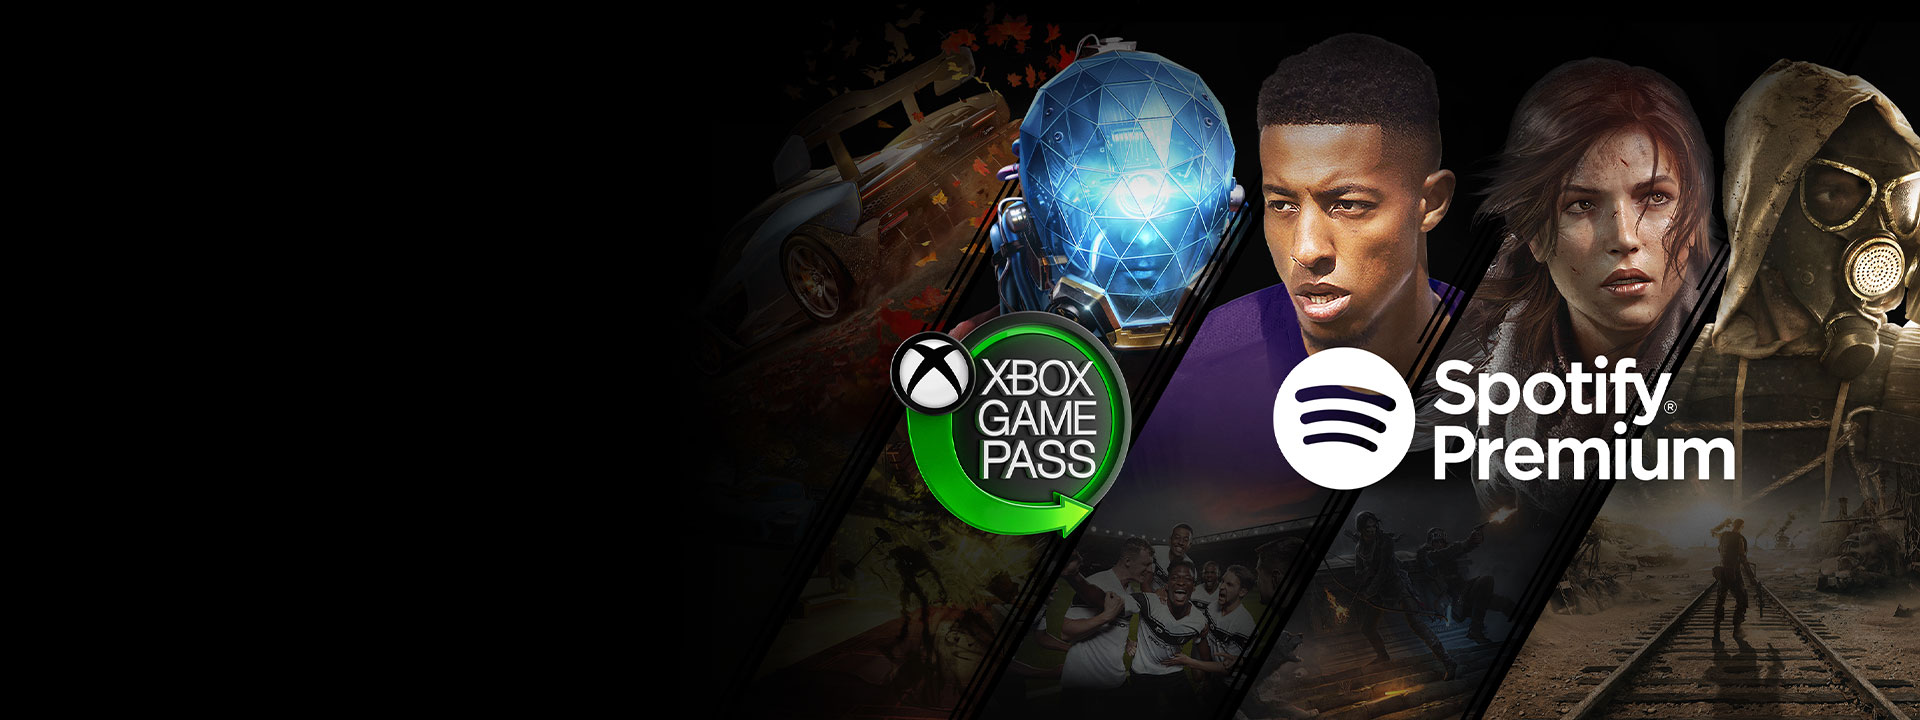 Xbox Game Pass logo and Spotify Premium logos over a collage of Windows 10 PC games including Forza Horizon 4, Prey, Football Manager 2019, Rise of the Tomb Raider, and Metro Exodus.